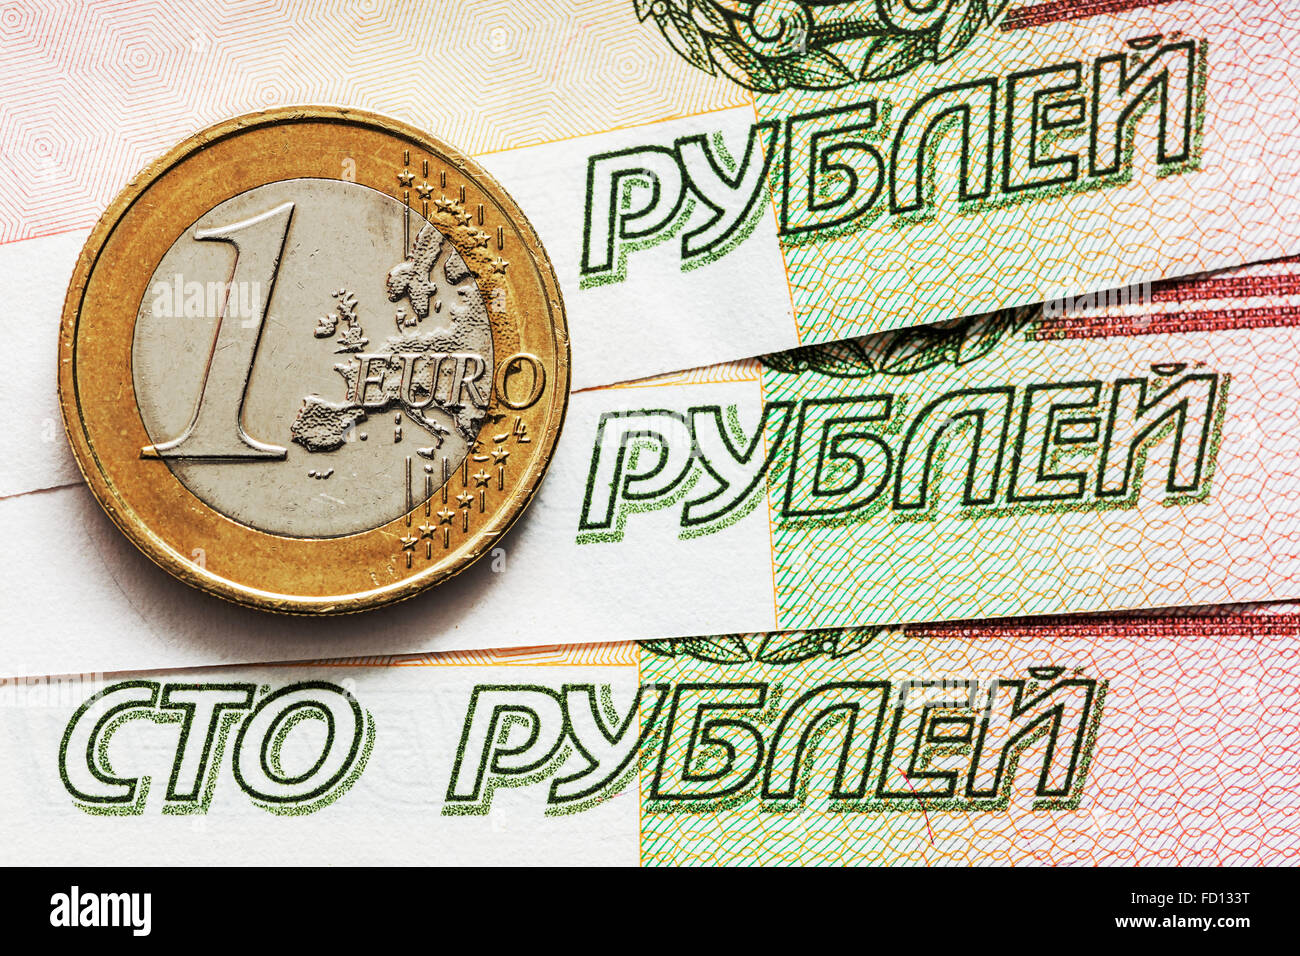 Expected exchange rate of the ruble to the euro. - Stock Image